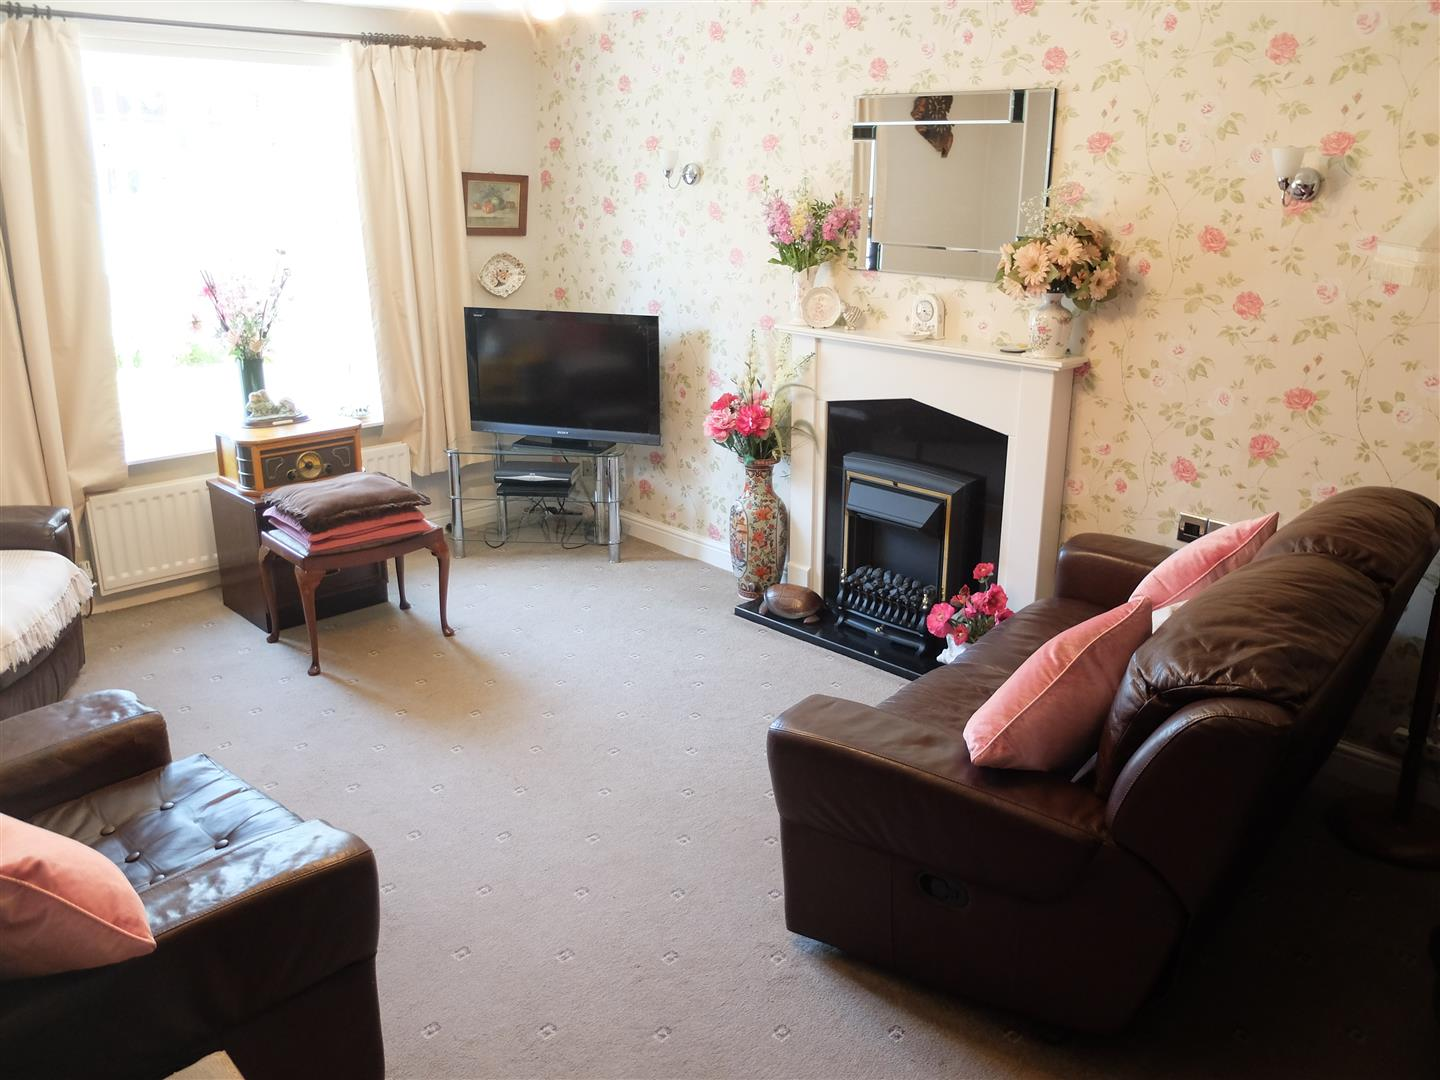 3 Bedrooms House - Semi-Detached For Sale 63 Cumrew Close Carlisle